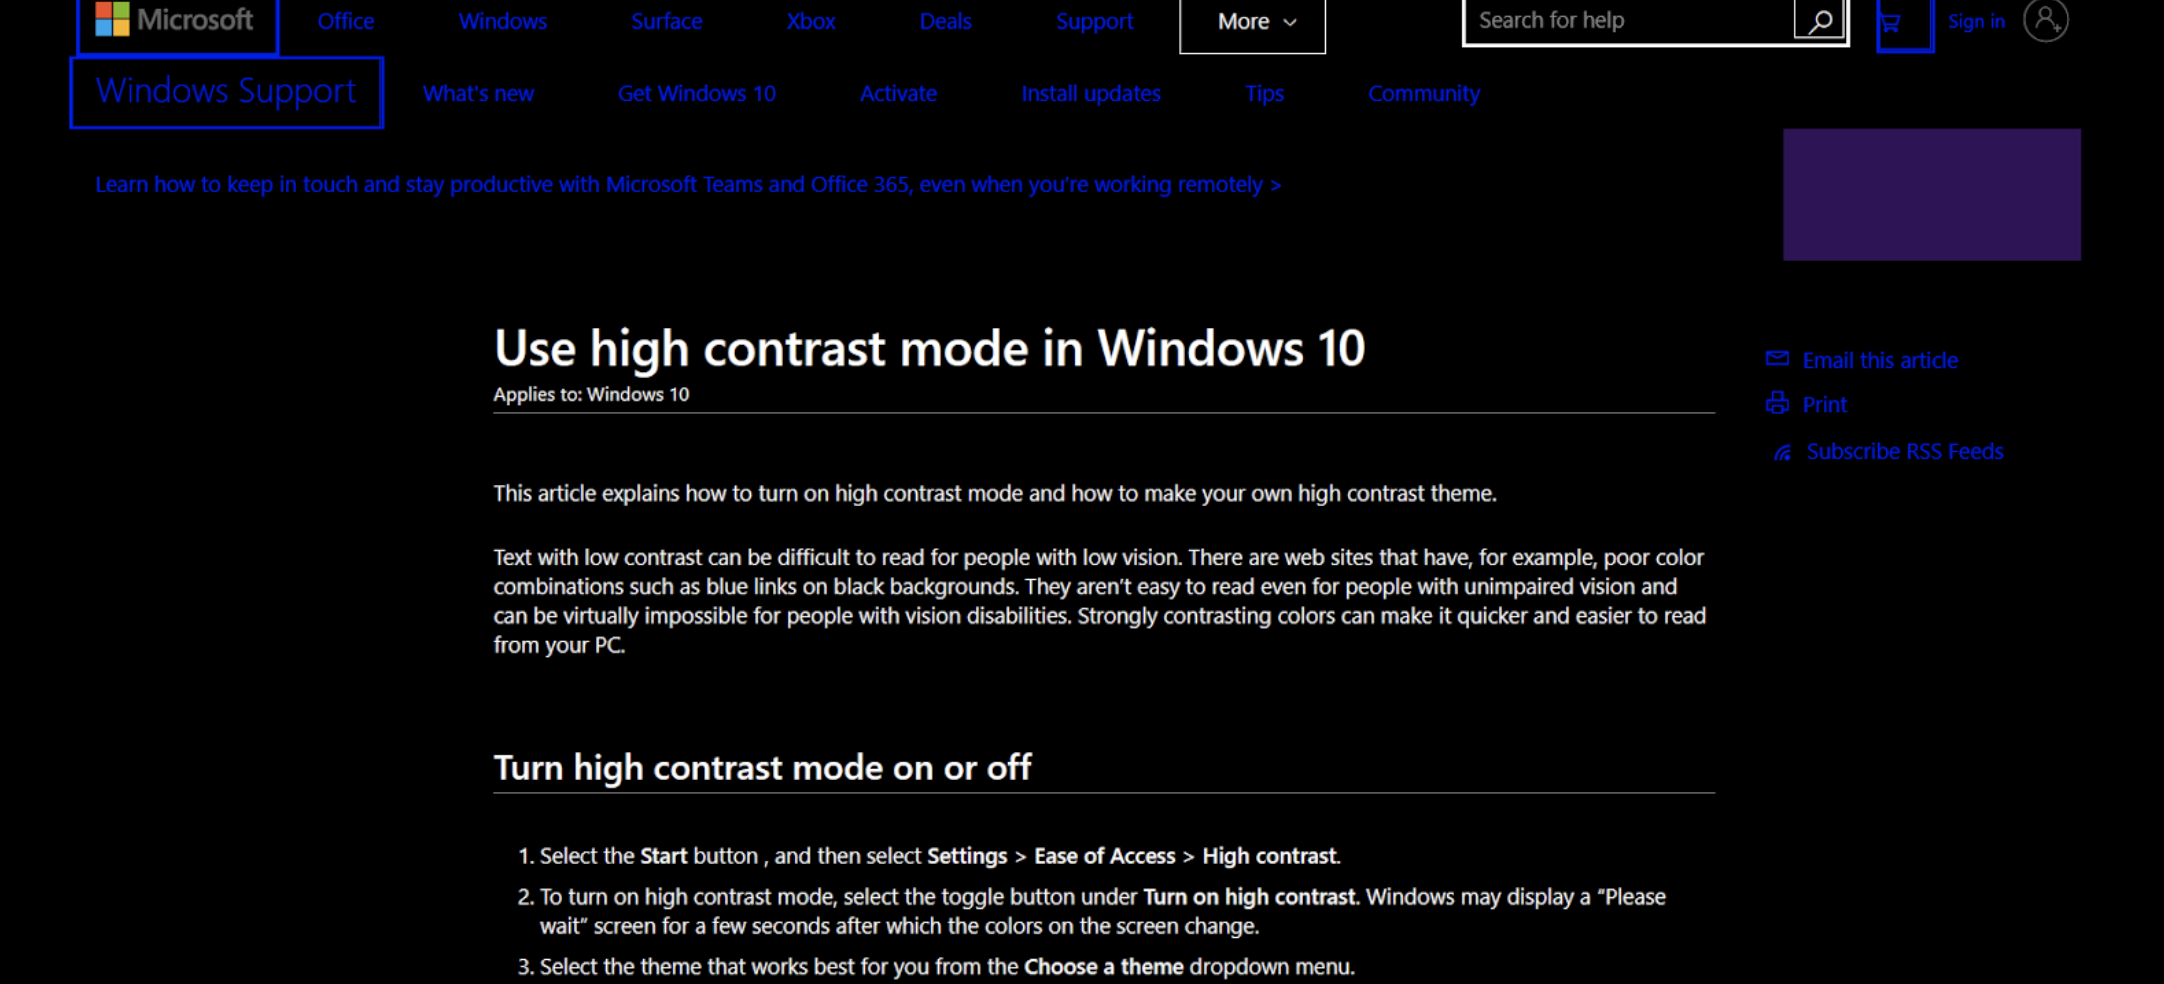 Windows 10 support site as seen in Windows High Contrast Mode